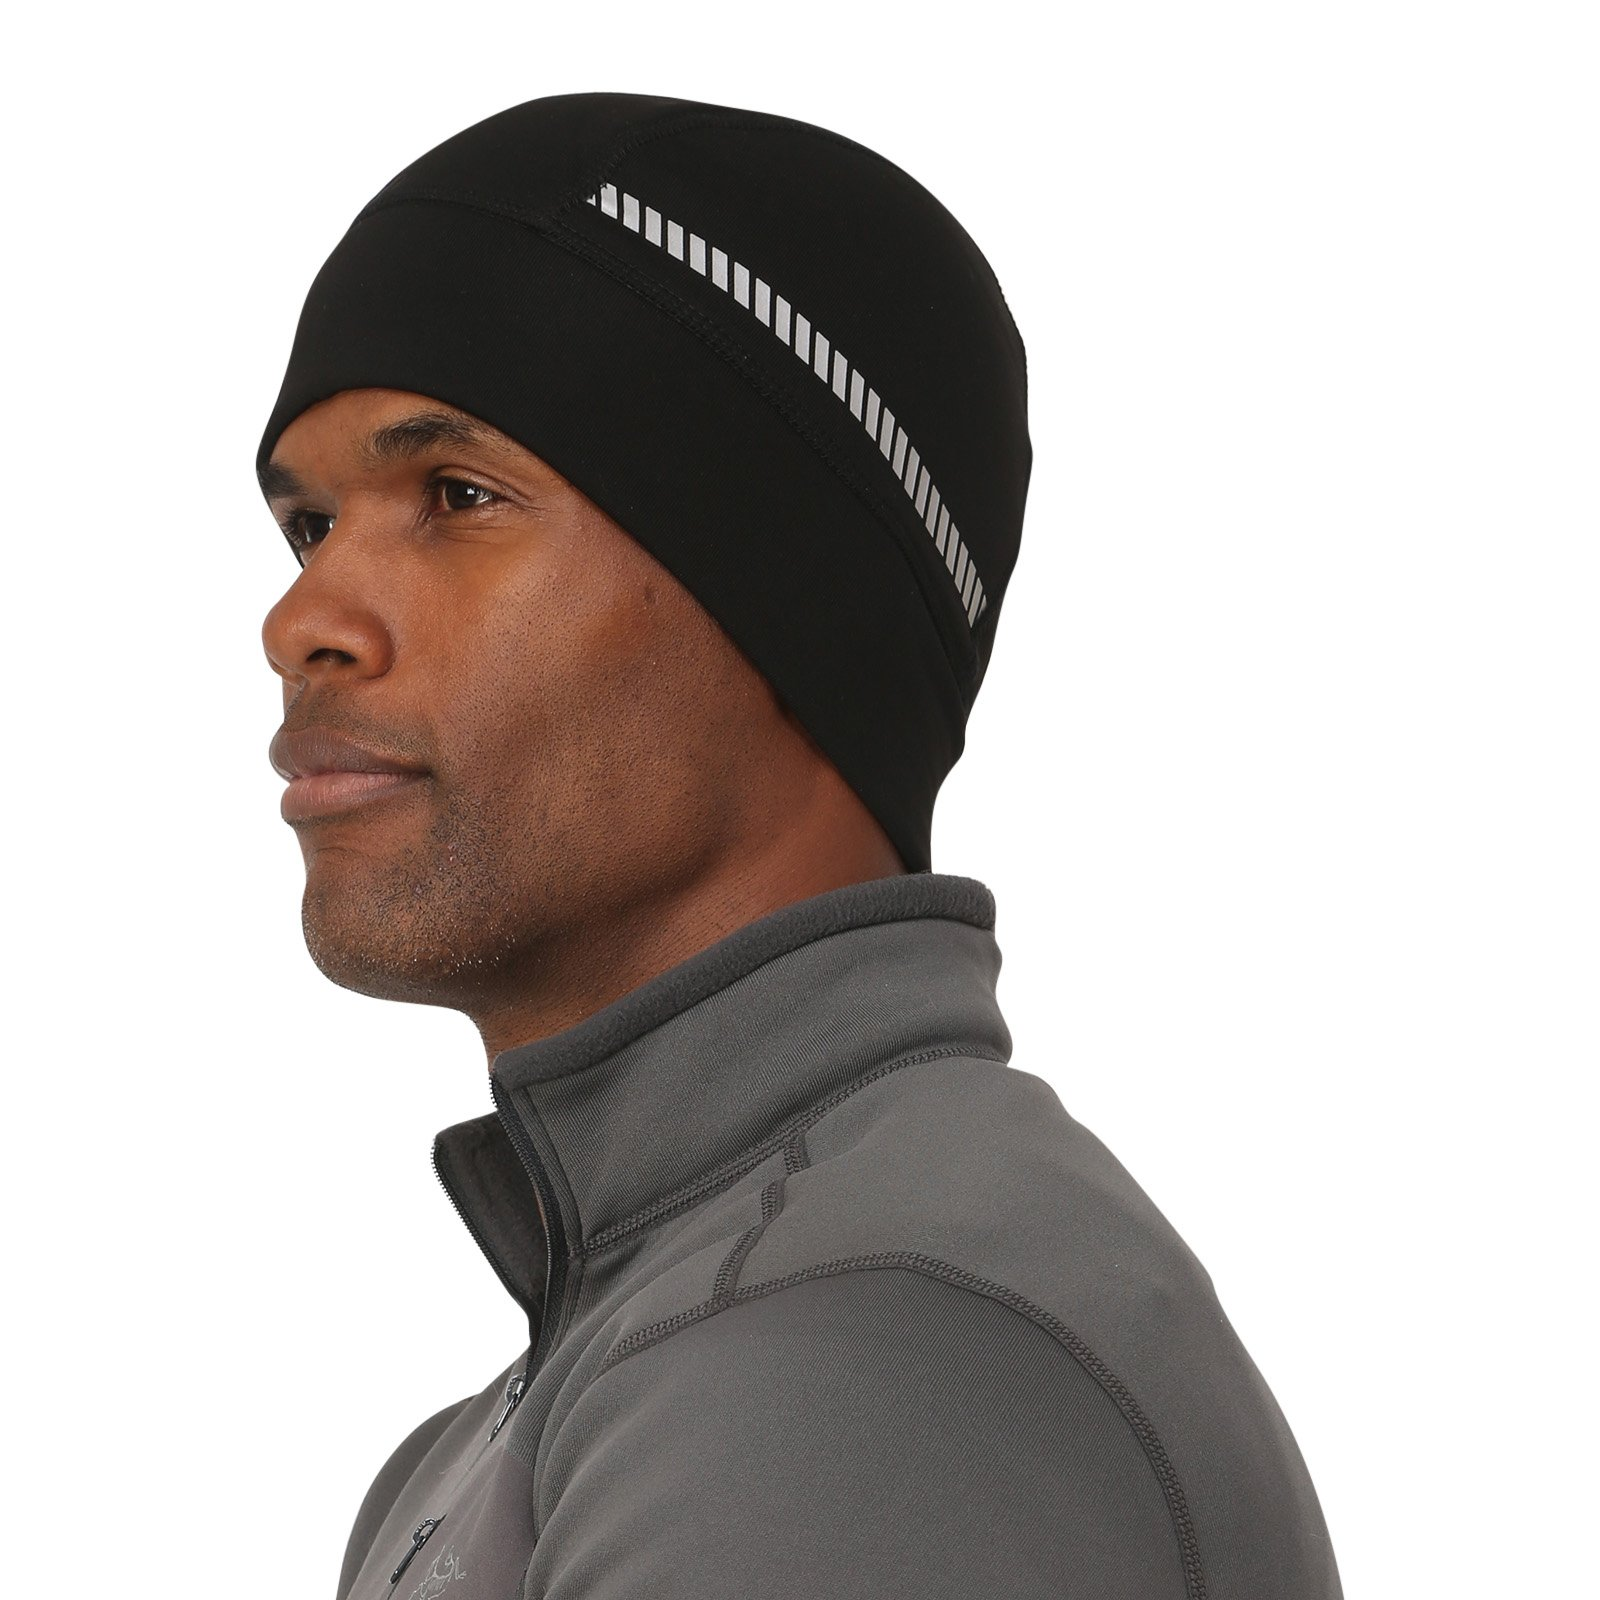 TrailHeads Men's Power Cap - 4-way stretch skull cap - black